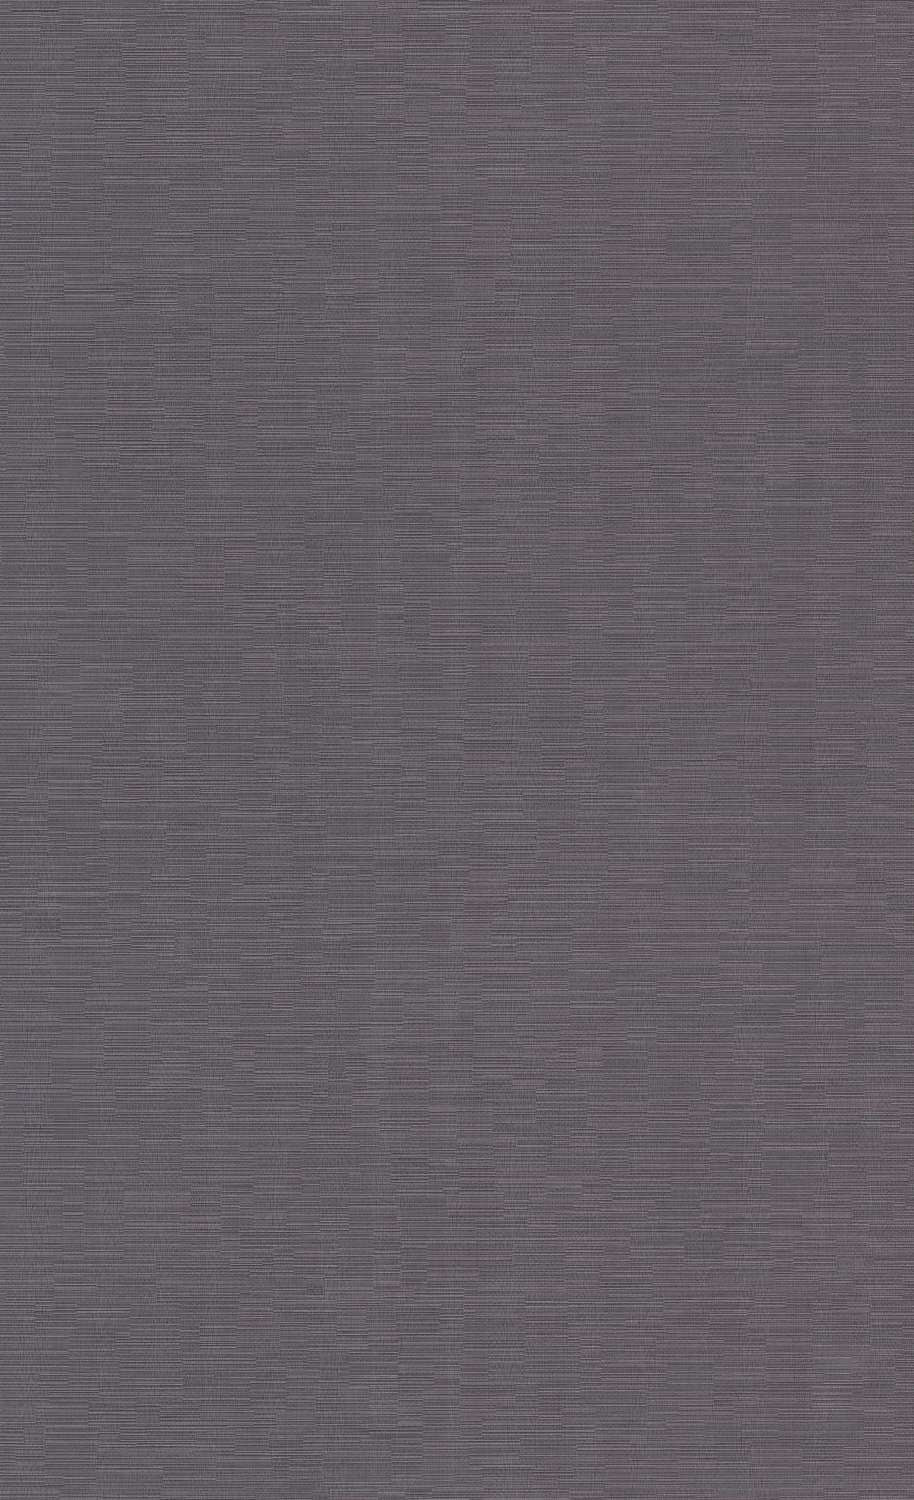 Taupe Plain Vinyl Wallpaper C7311 | Modern Commercial and Hospitality Wall Covering